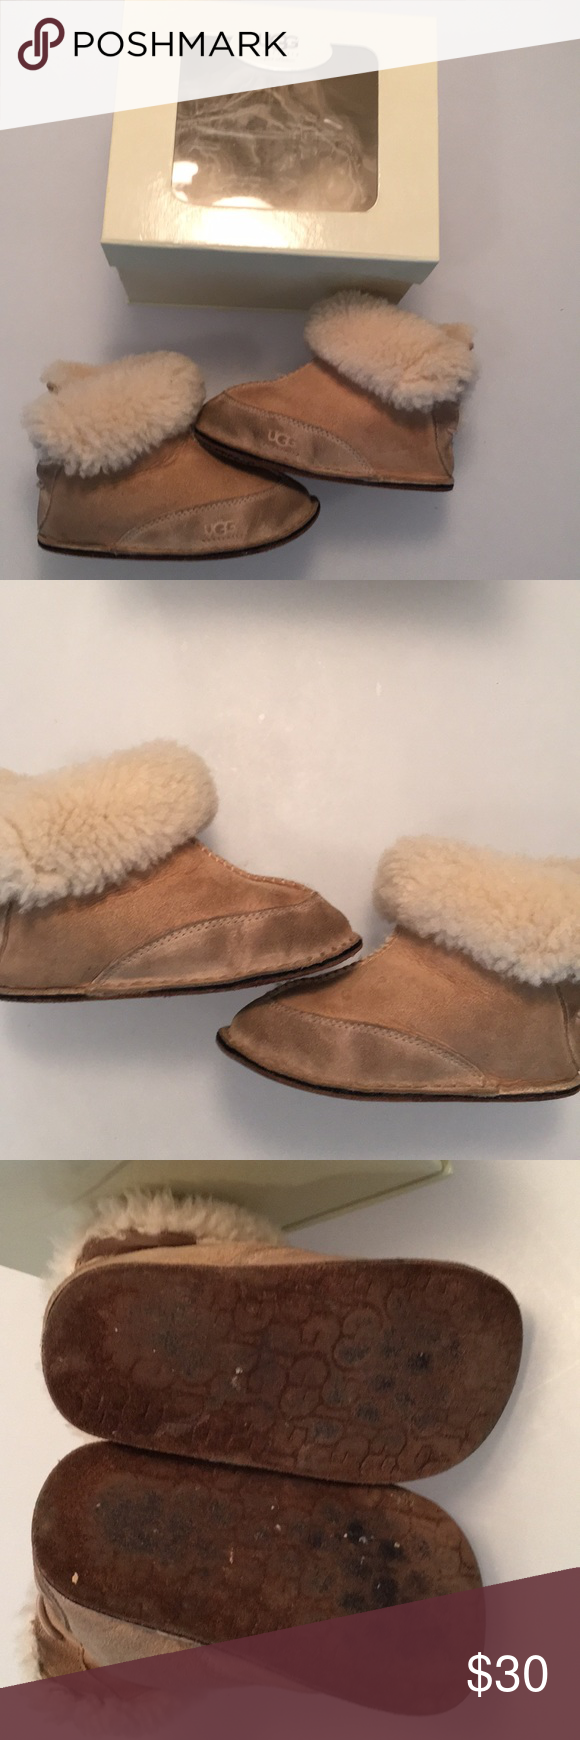 37c1d0c8afa Baby Uggs size large (approx size 5-6) Baby Uggs size large, similar ...